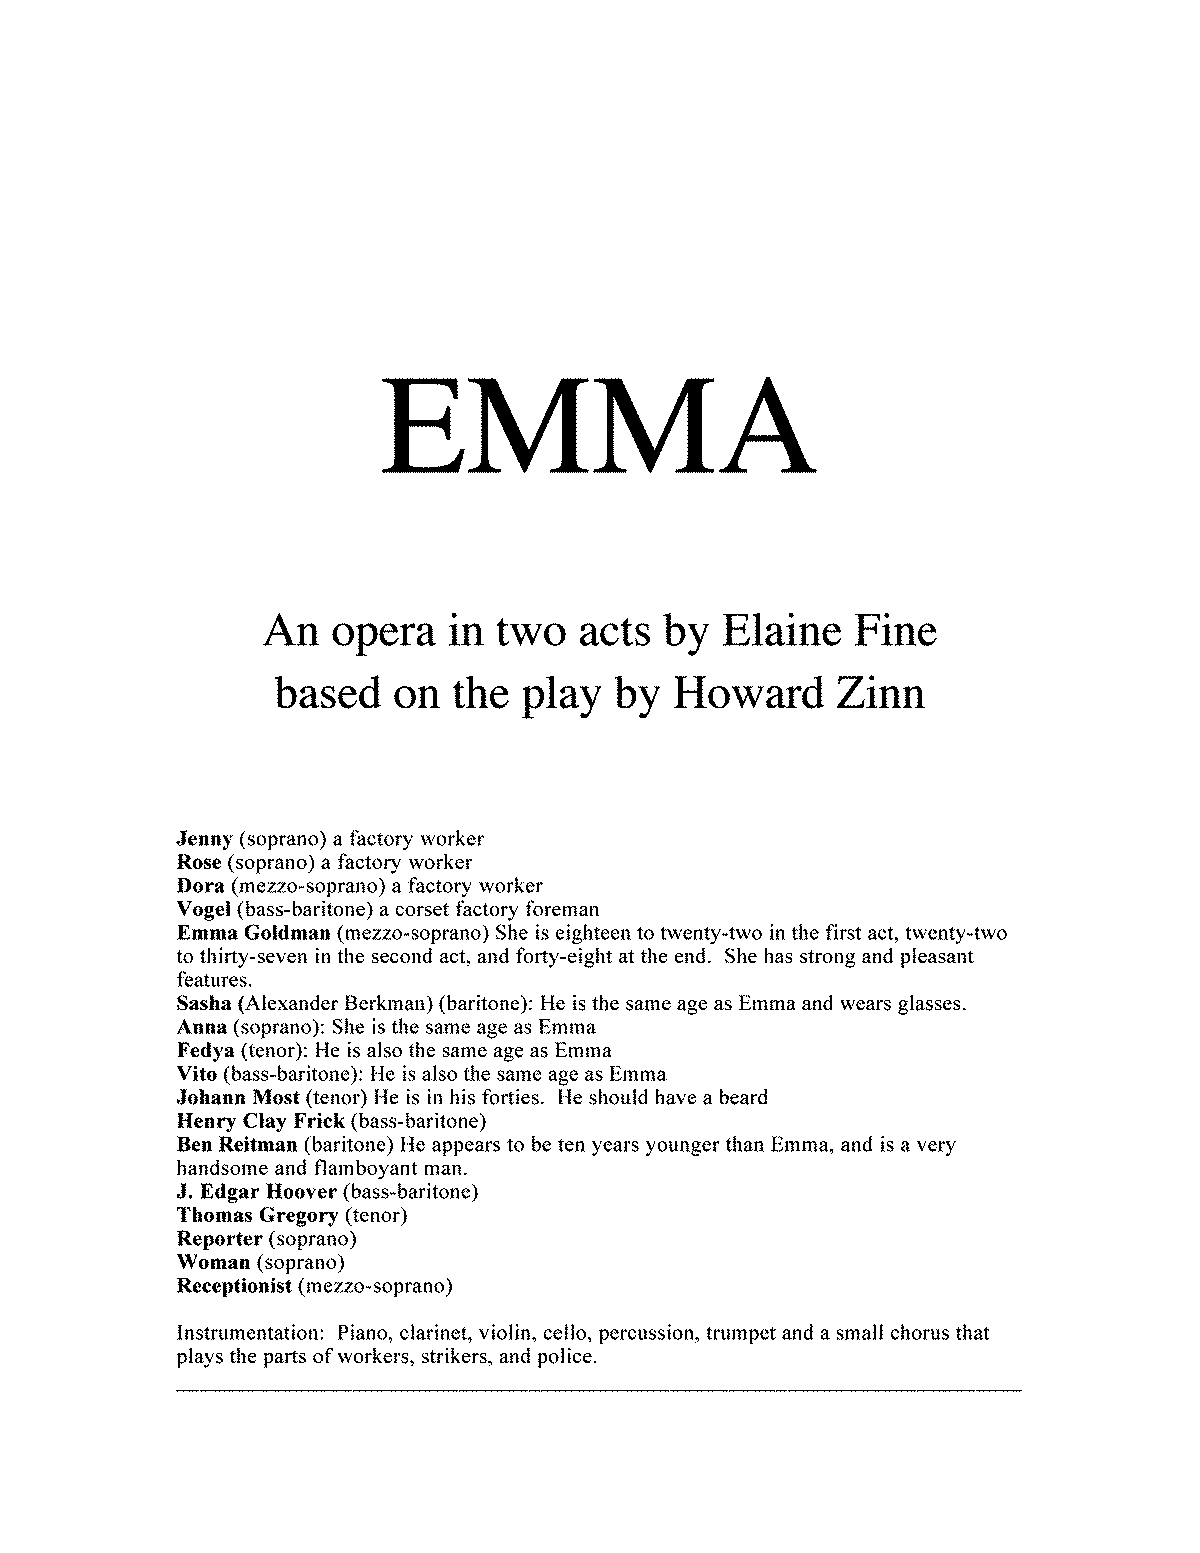 WIMA.9d22-Emma PV Act 1 part 1.pdf